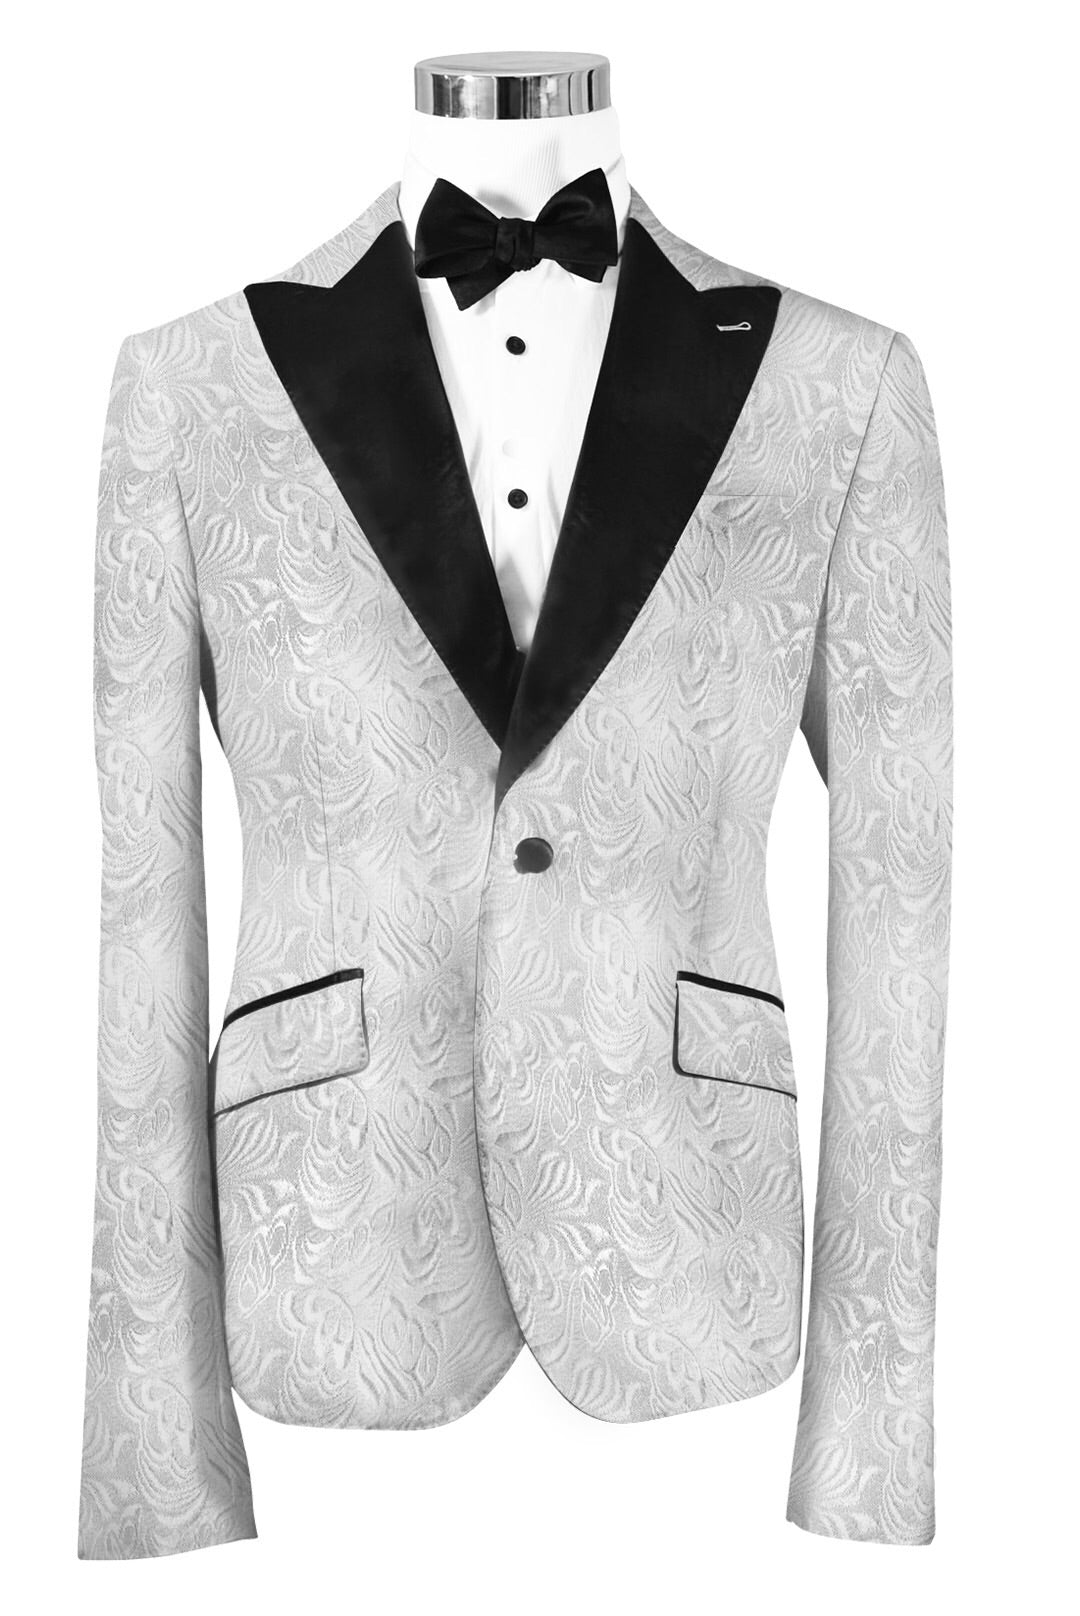 shop for authentic nice cheap picked up The Regal White Paisley Dinner Jacket